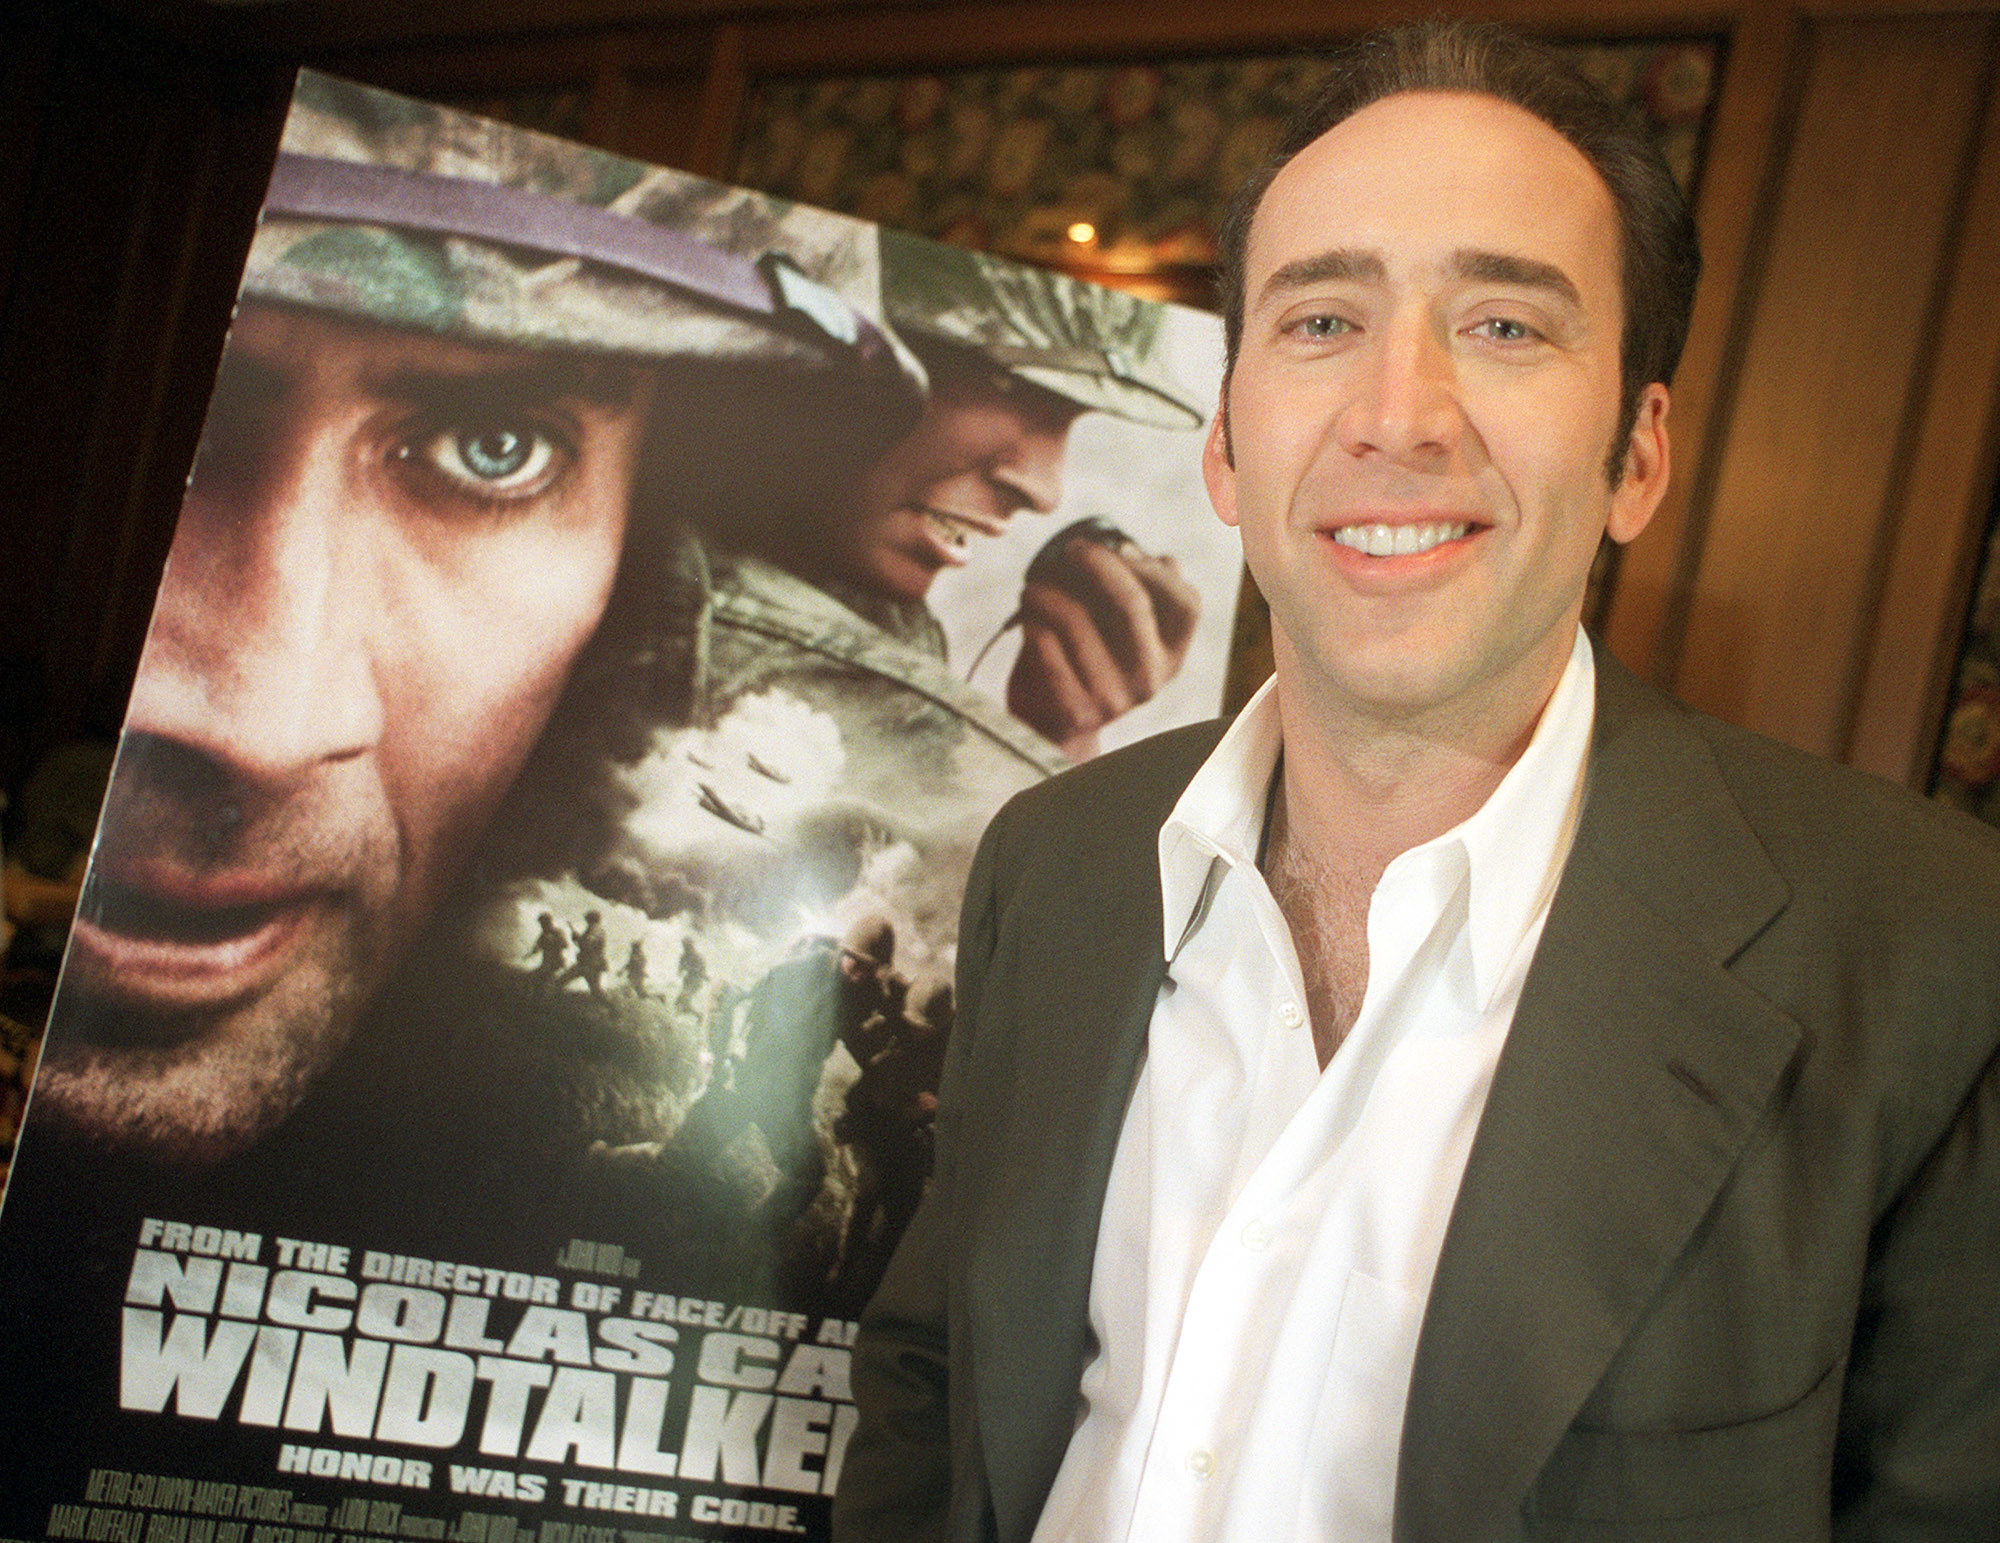 Nicolas Cage next to his own poster